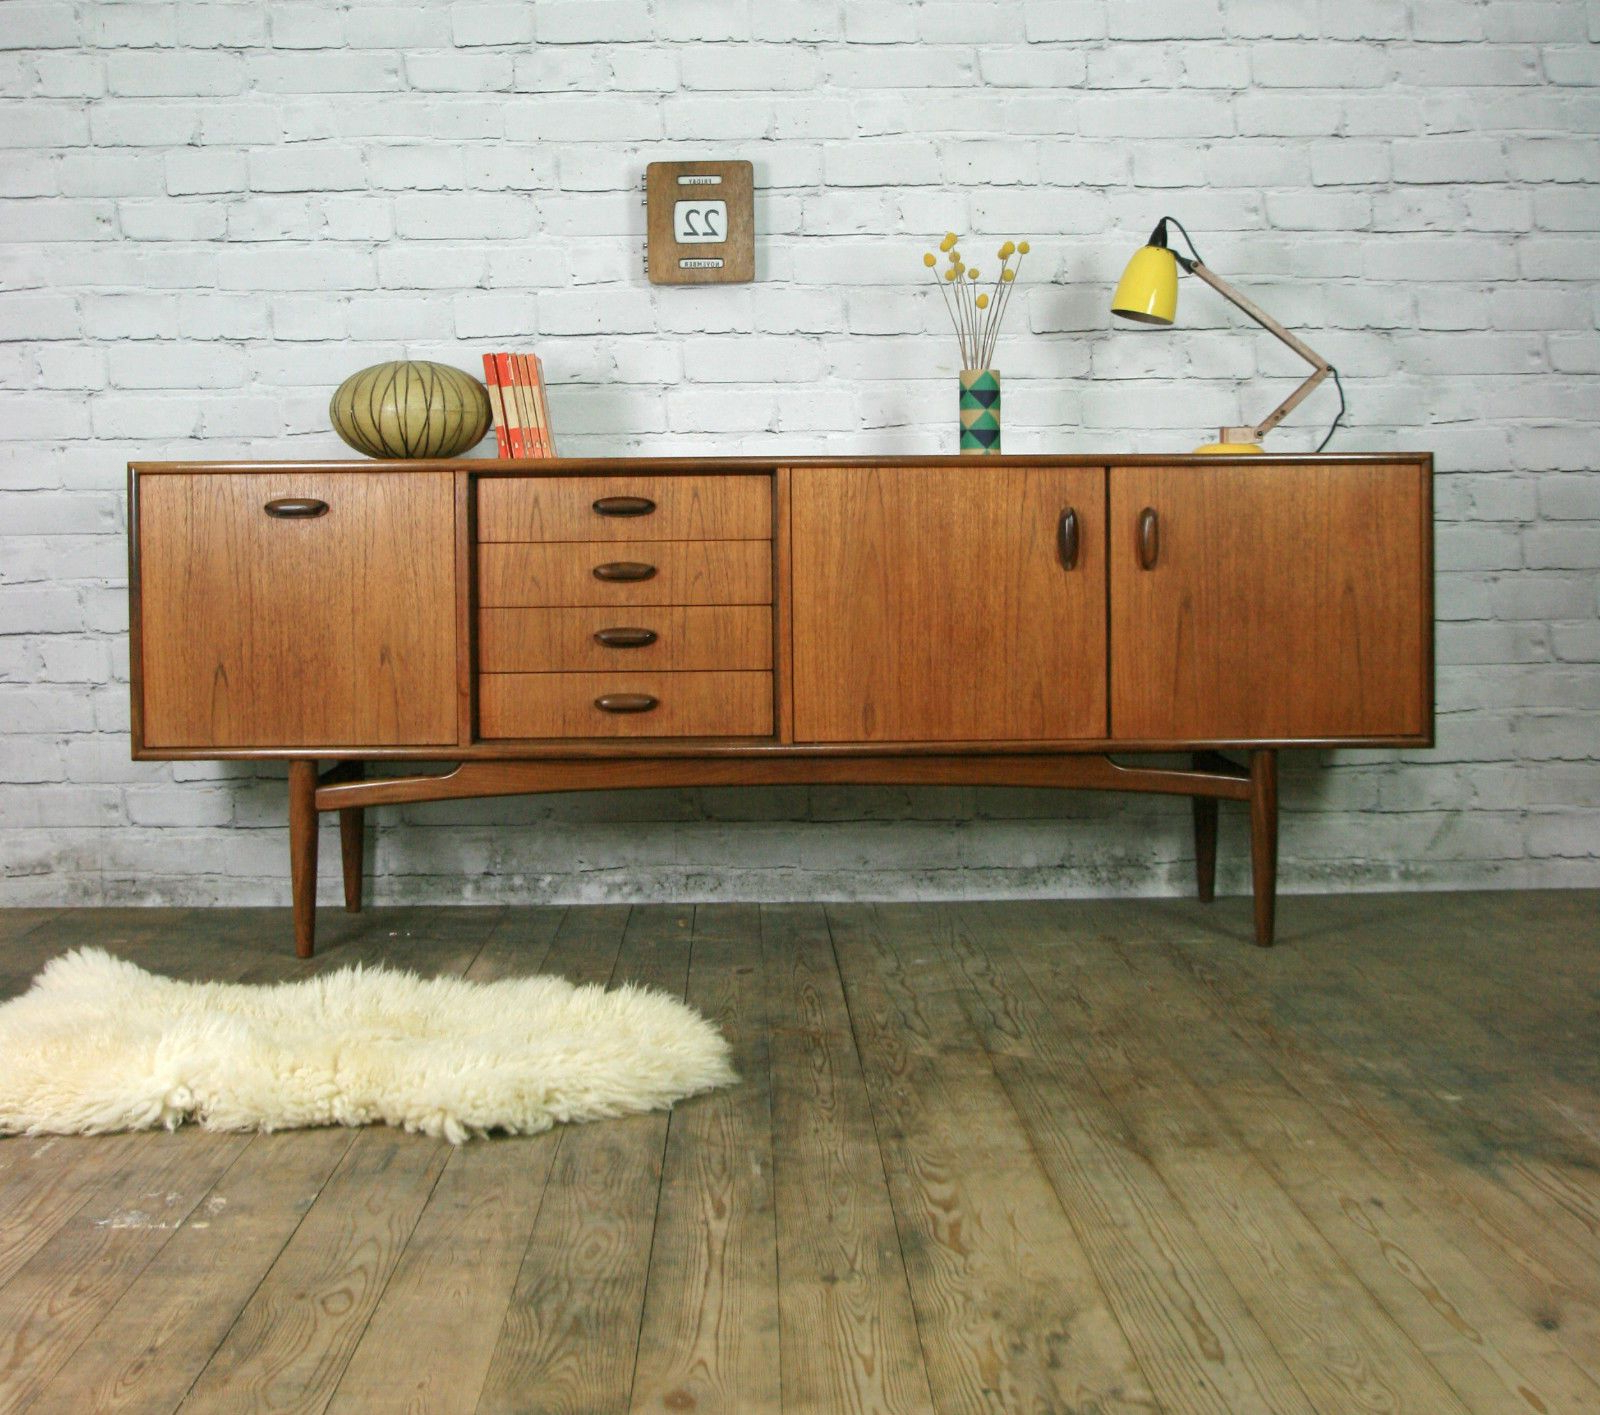 G Plan Retro Vintage Teak Mid Century Sideboard Eames Era Regarding Mid Century Retro Modern Oak And Espresso Wood Buffets (View 7 of 20)